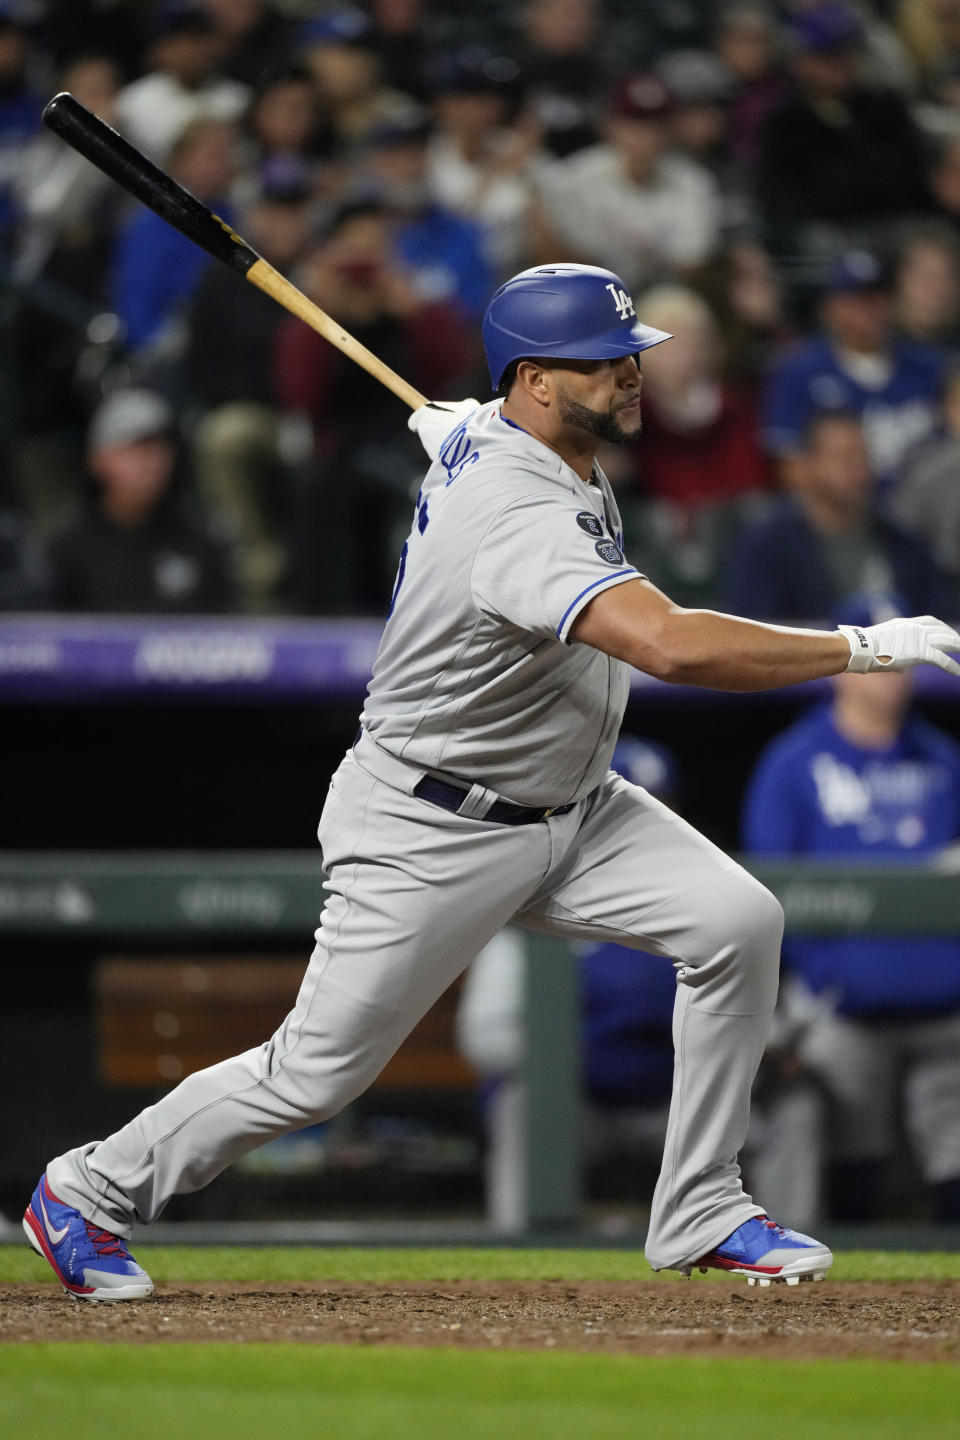 Los Angeles Dodgers pinch-hitter Albert Pujols follows the flight of his RBI-single off Colorado Rockies relief pitcher Jhoulys Chacin in the 10th inning of a baseball game Tuesday, Sept. 21, 2021, in Denver. The Dodgers won 5-4. (AP Photo/David Zalubowski)